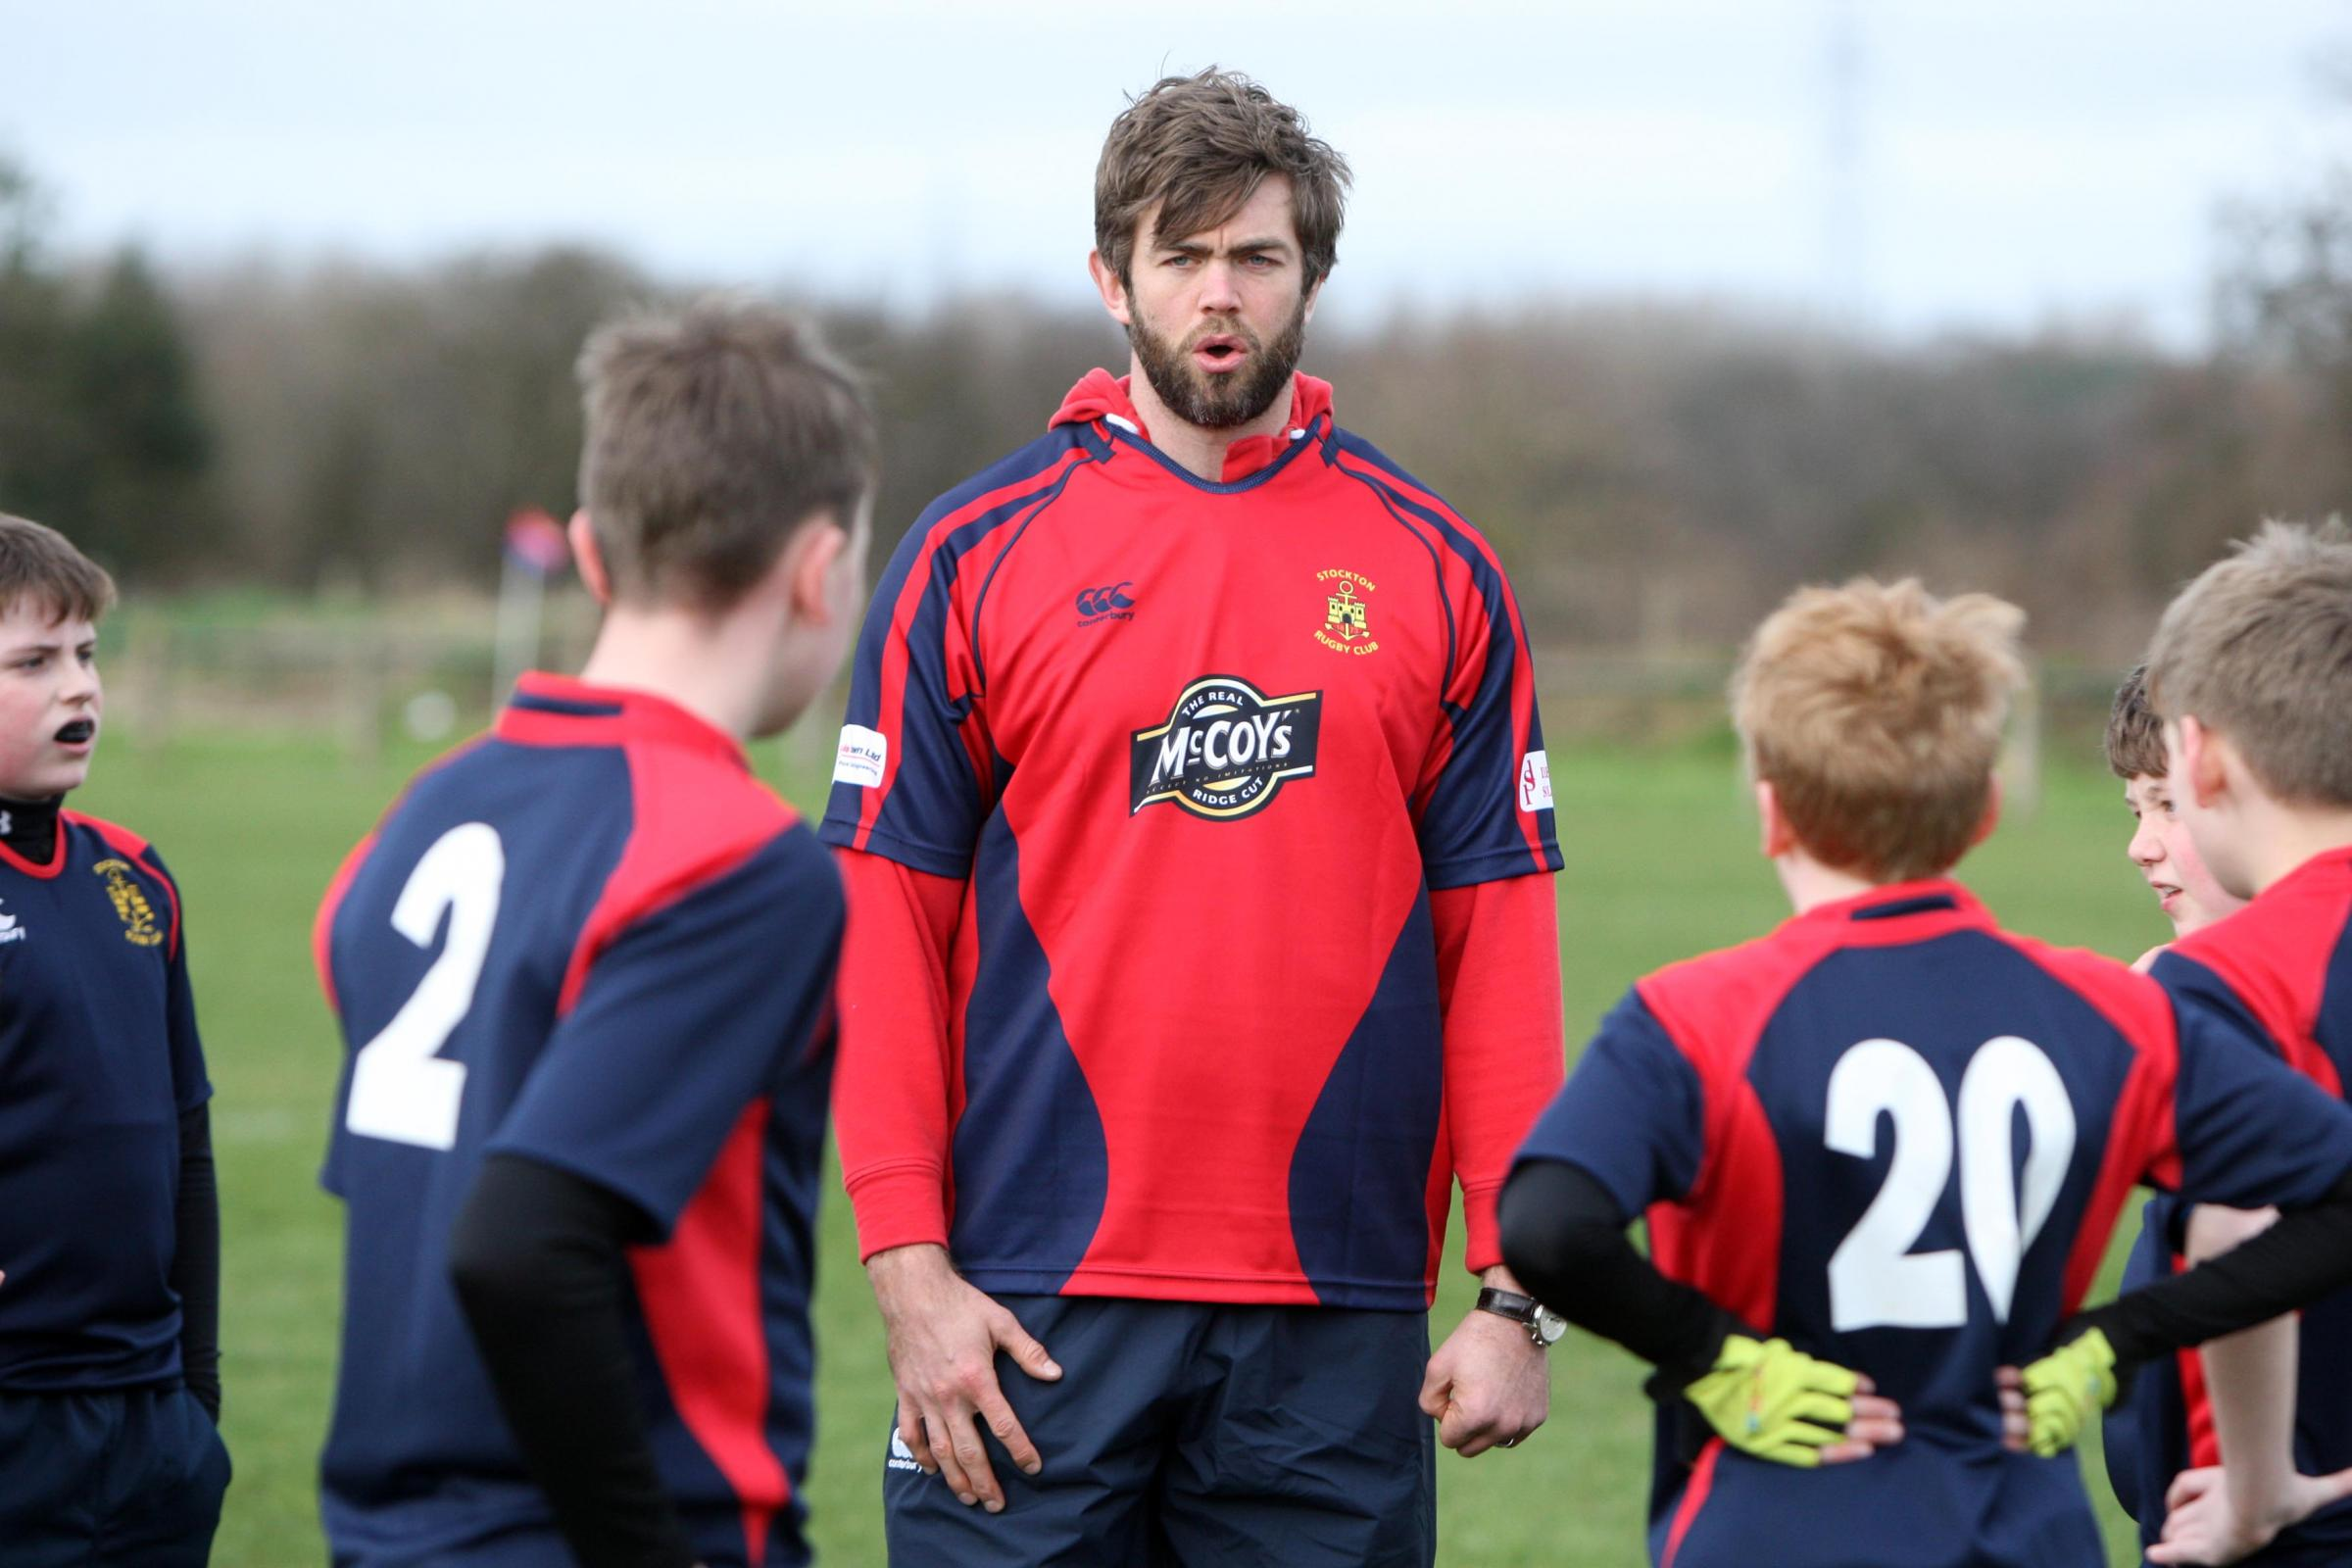 British and Irish Lions rugby union star Geoff Parling goes back to his roots by visiting Stockton Rugby Club where he started his illustrious career by training some of th